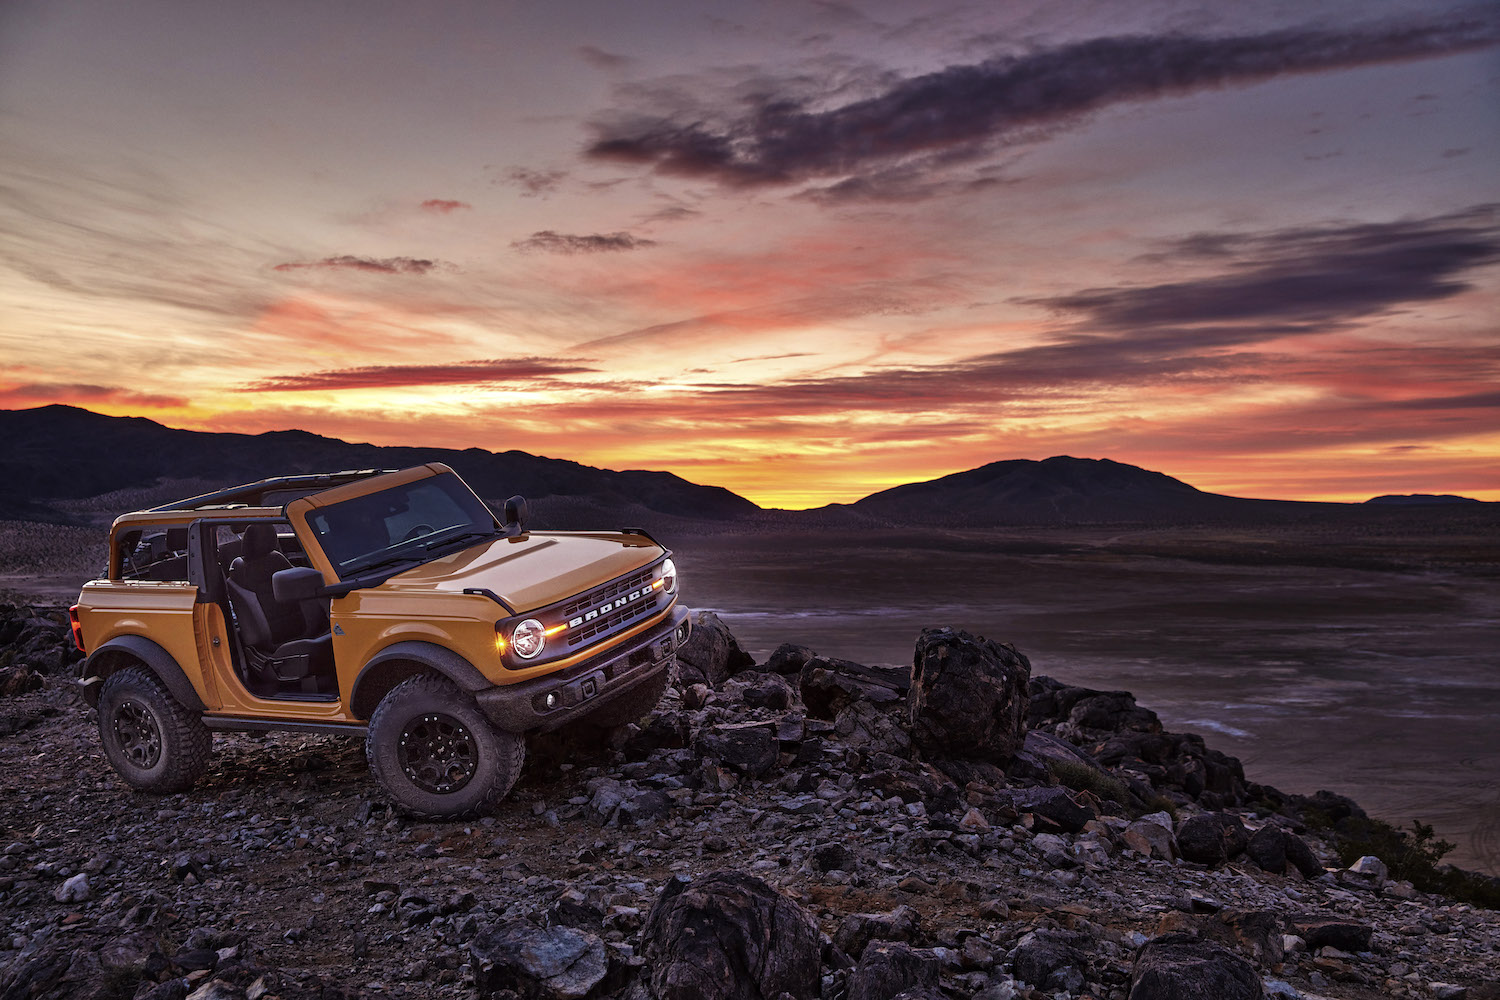 2021 Ford Bronco Tops 230,000 Reservations - Muscle Cars ...